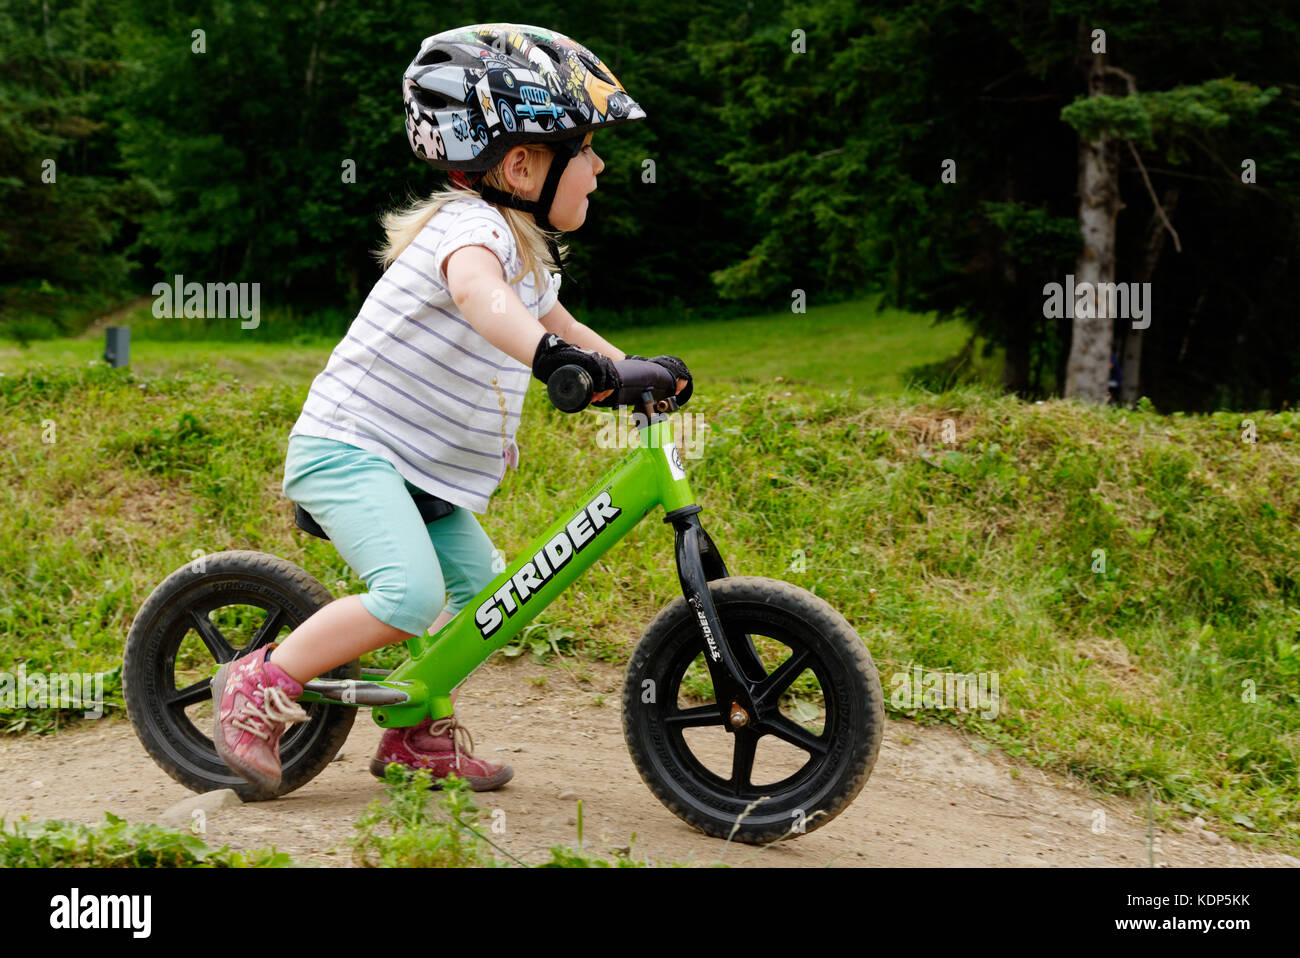 e26e46c803d A three year old girl riding a balance bike - Stock Image